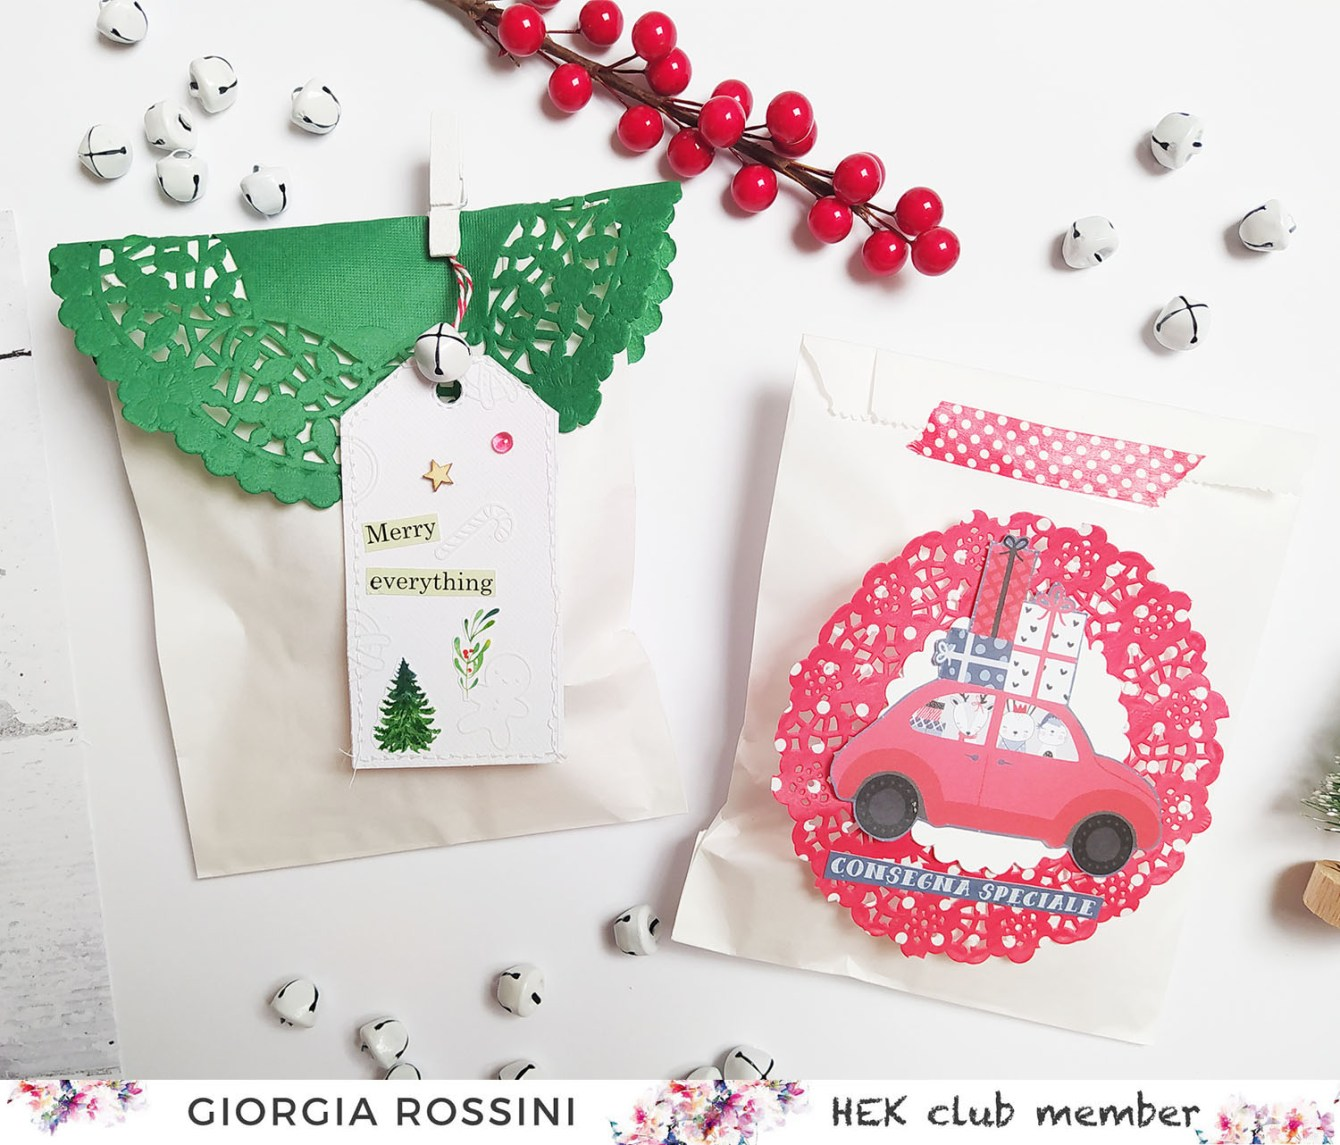 Giorgia Rossini for HEK Club